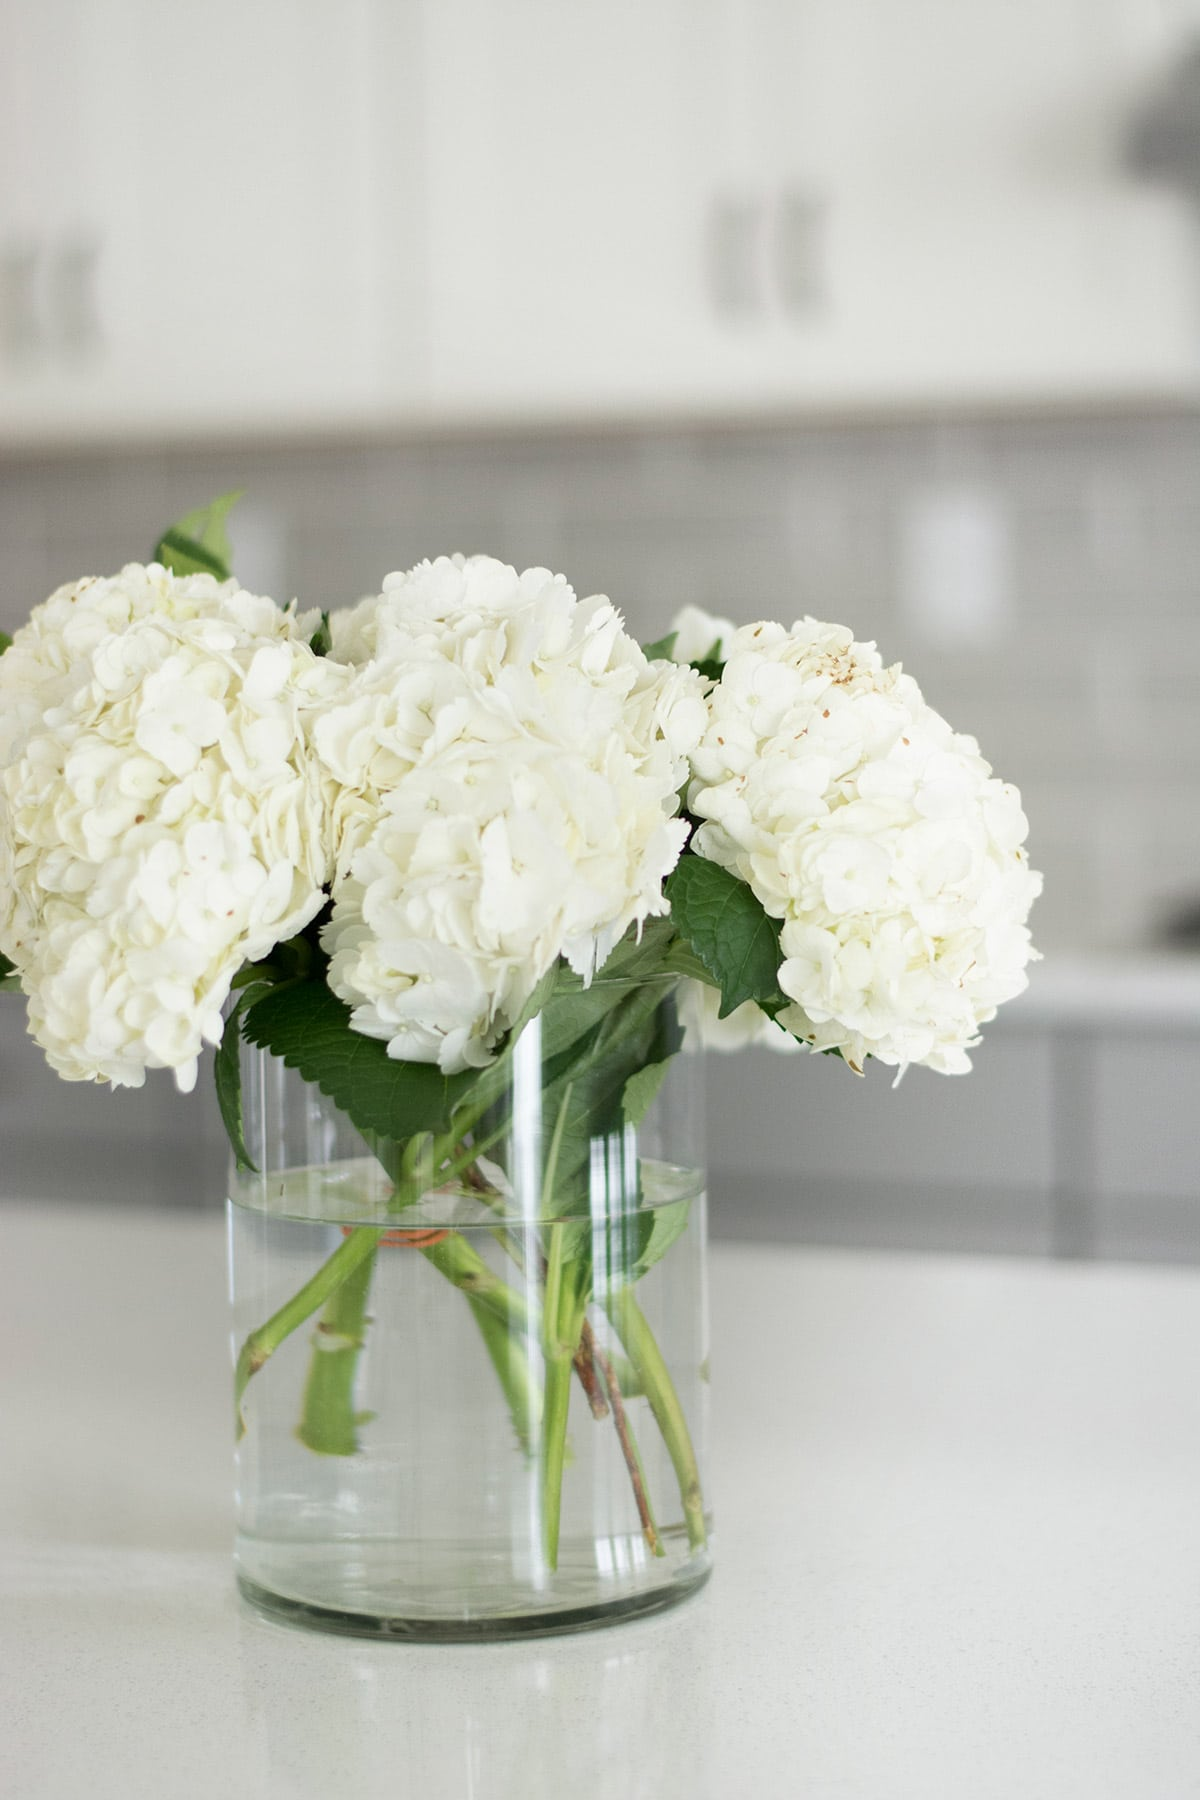 hydrangeas on white quartz kitchen counter